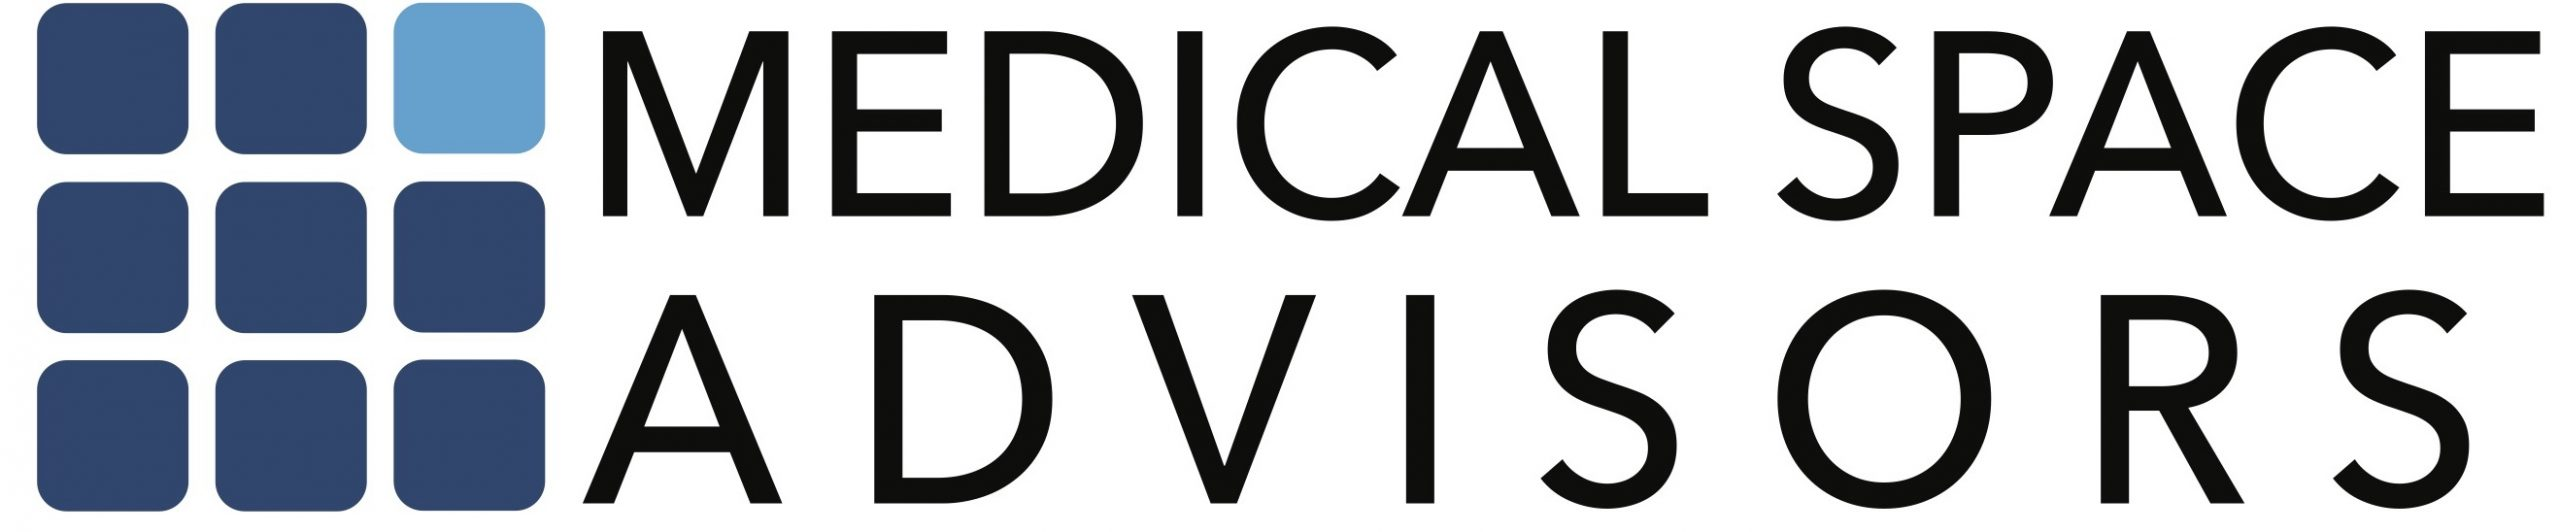 Medical Space Advisors